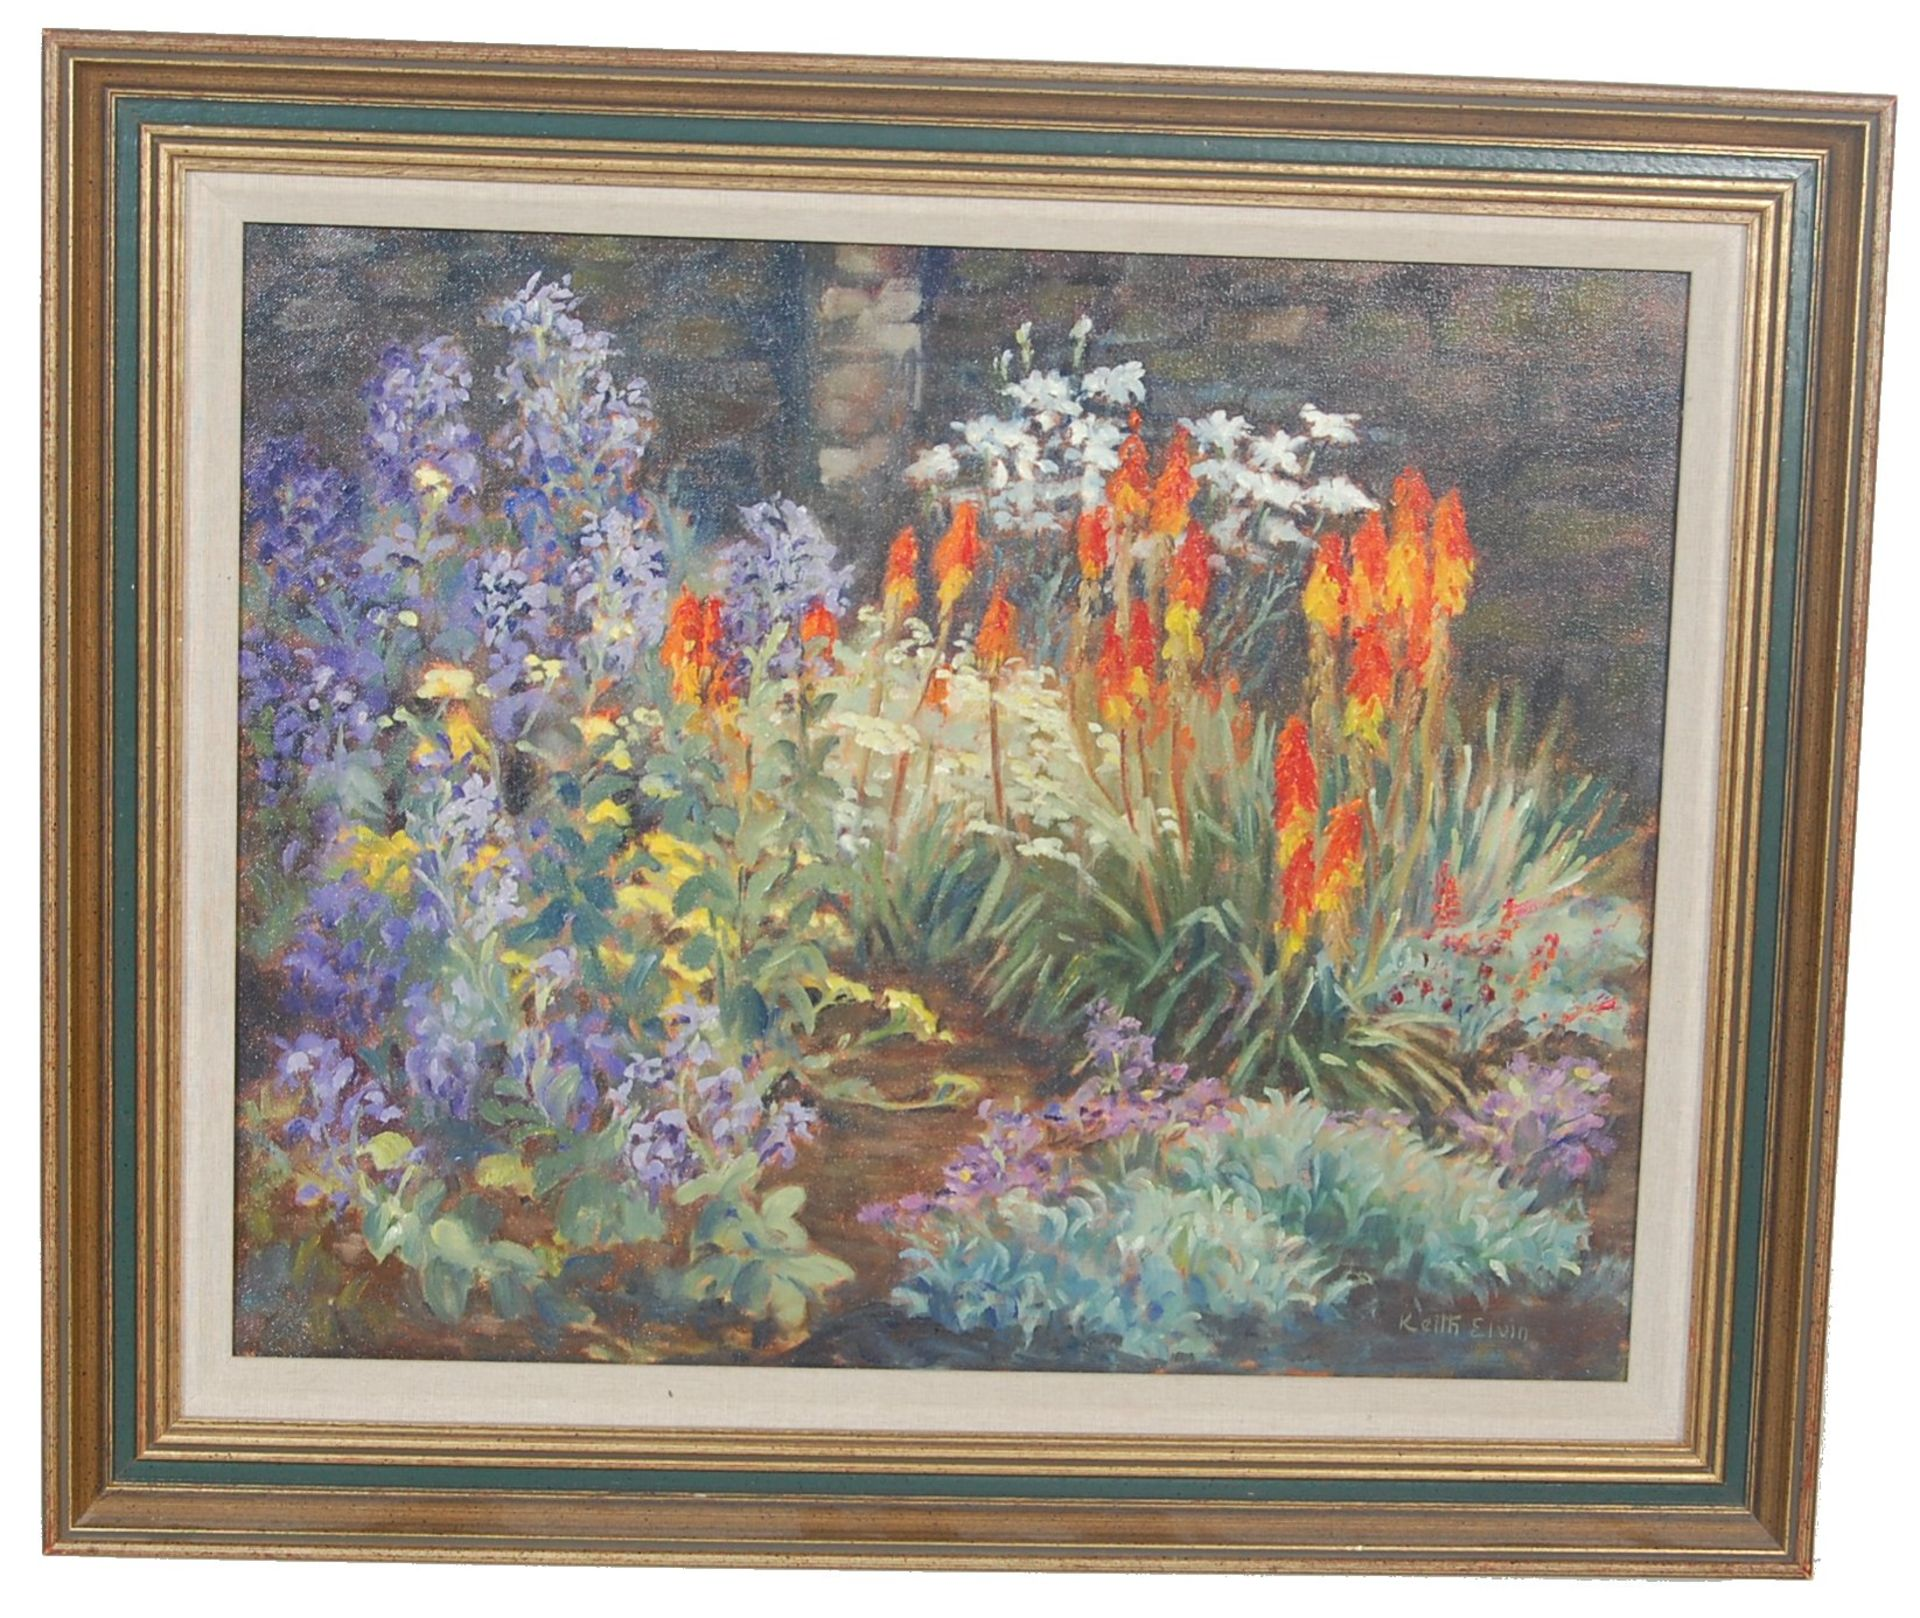 PAINTING BY LOCAL ARTIST - KEITH ELVIN - THE MIXED BORDER